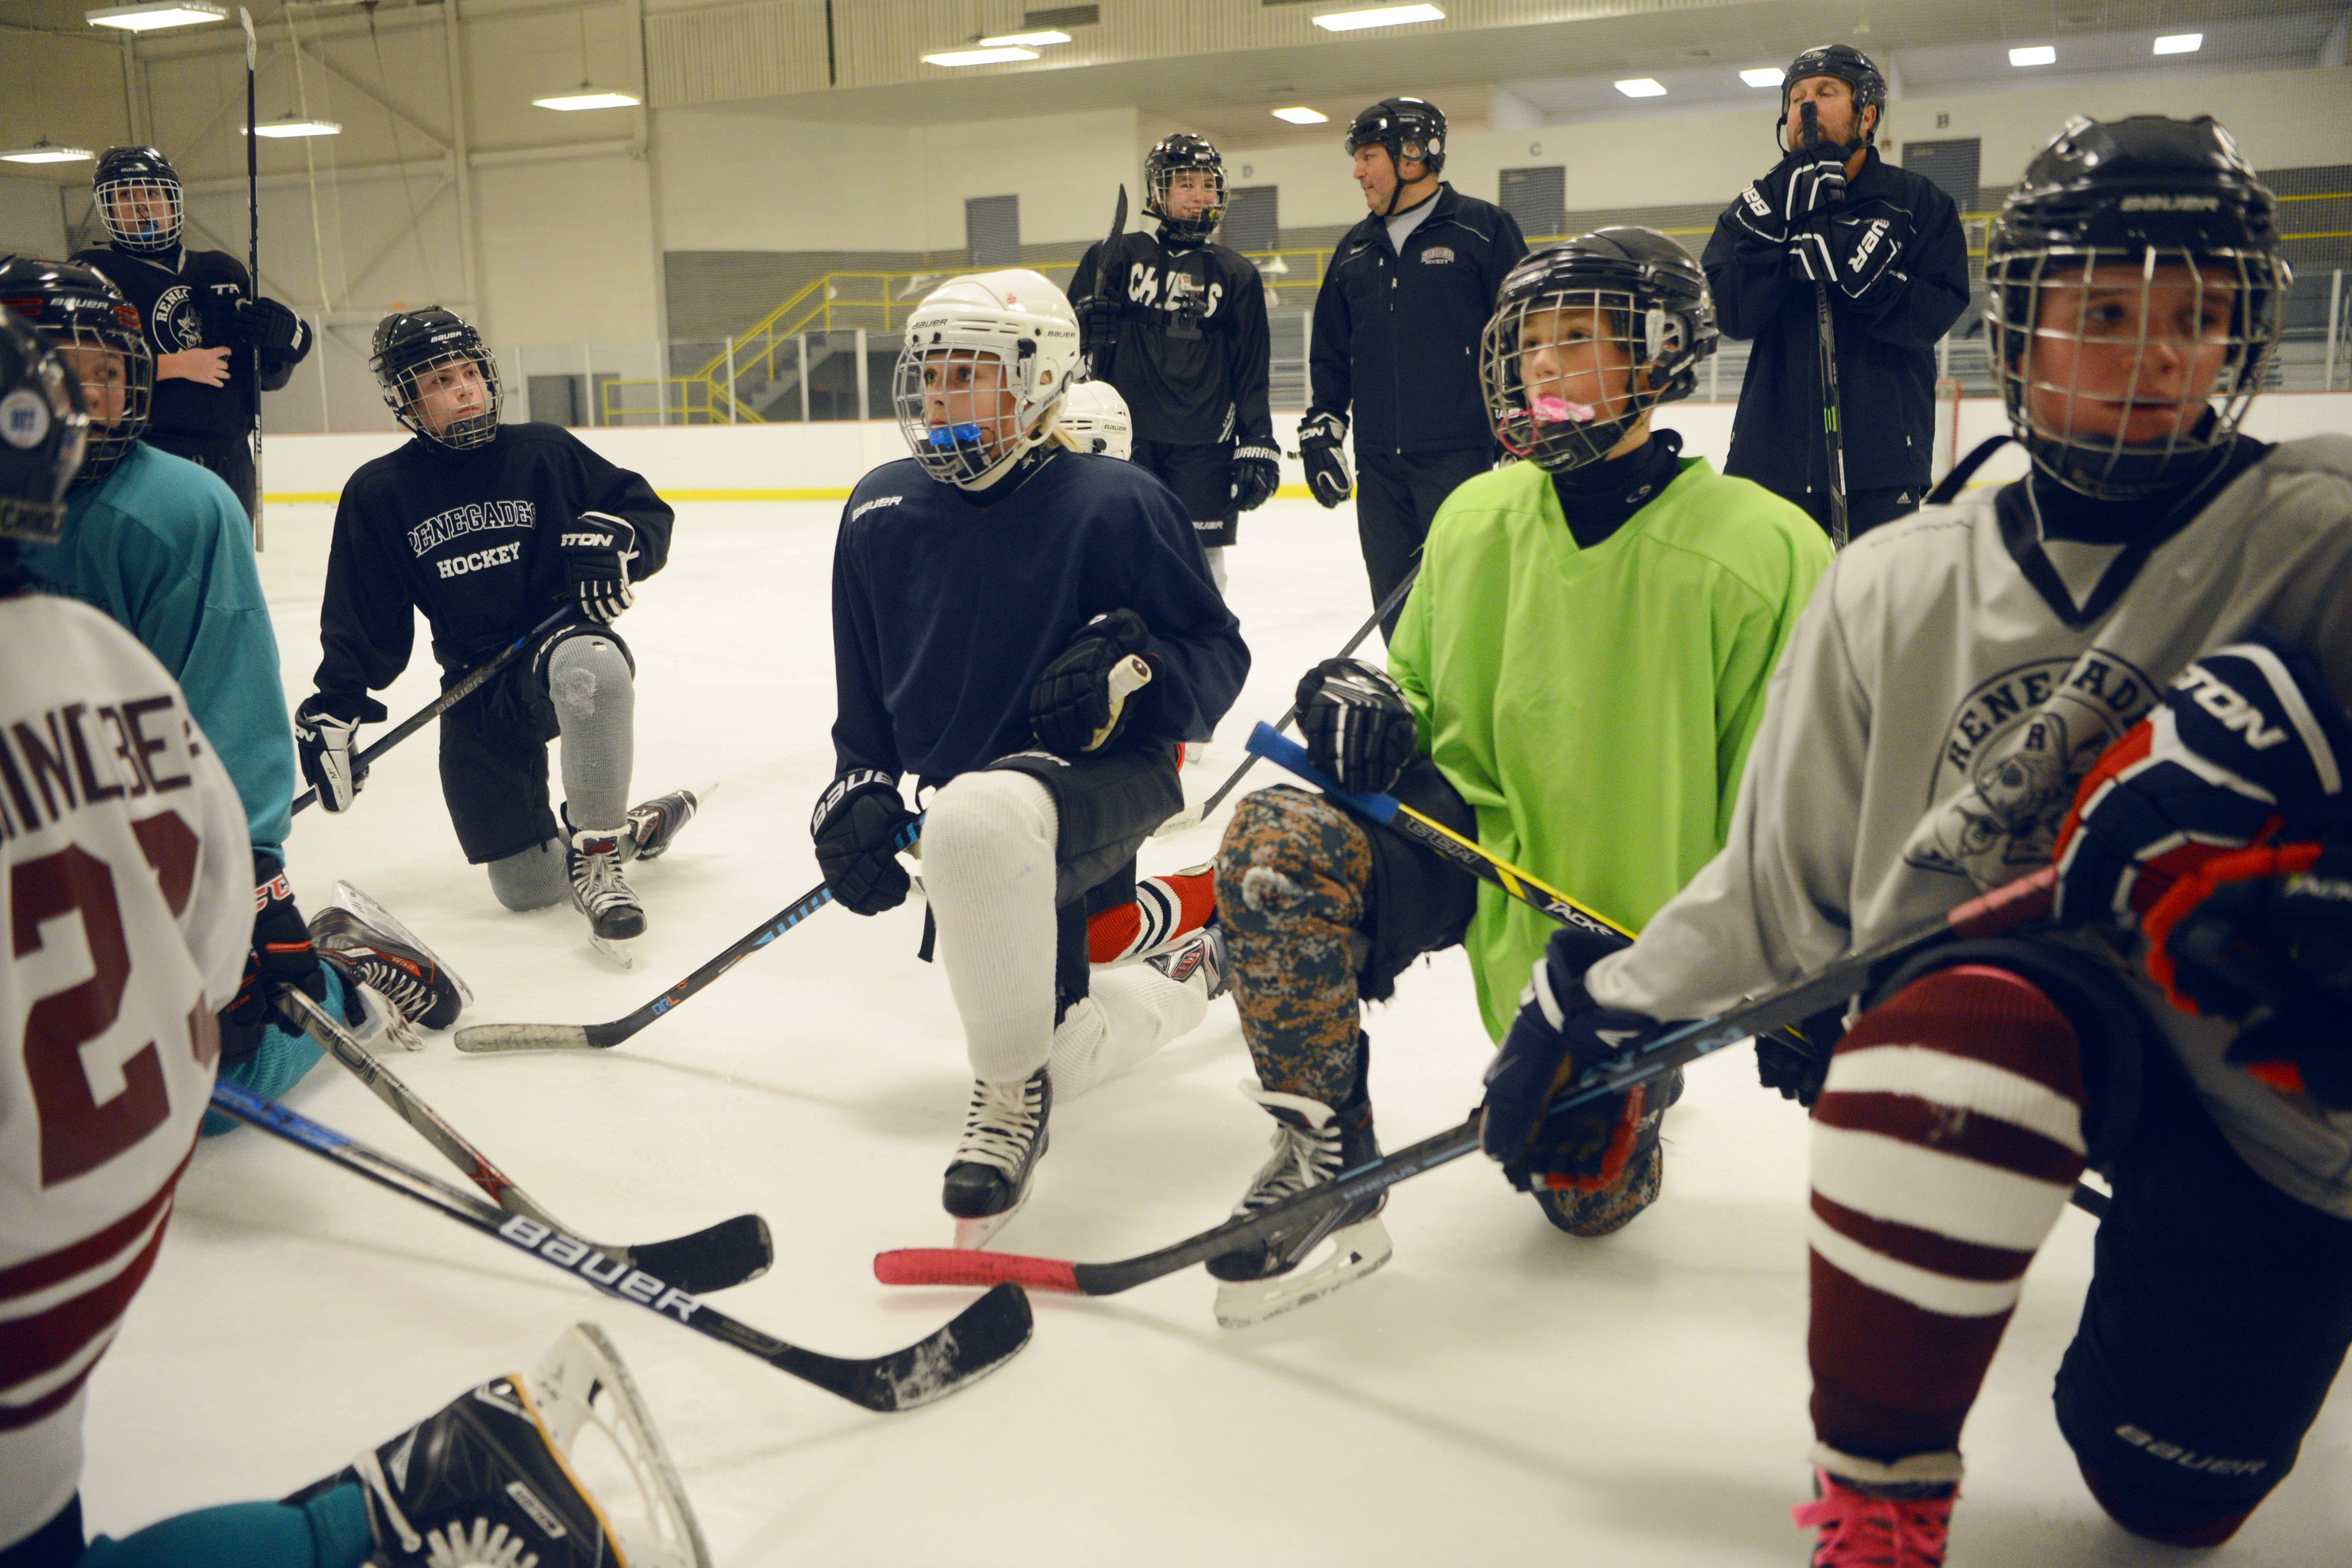 Eli Ternovits, 12, (white helmet) and her teammates pause as their coach goes over a drill at a recent practice. Eli is one of a growing legion of young female hockey players across the country.